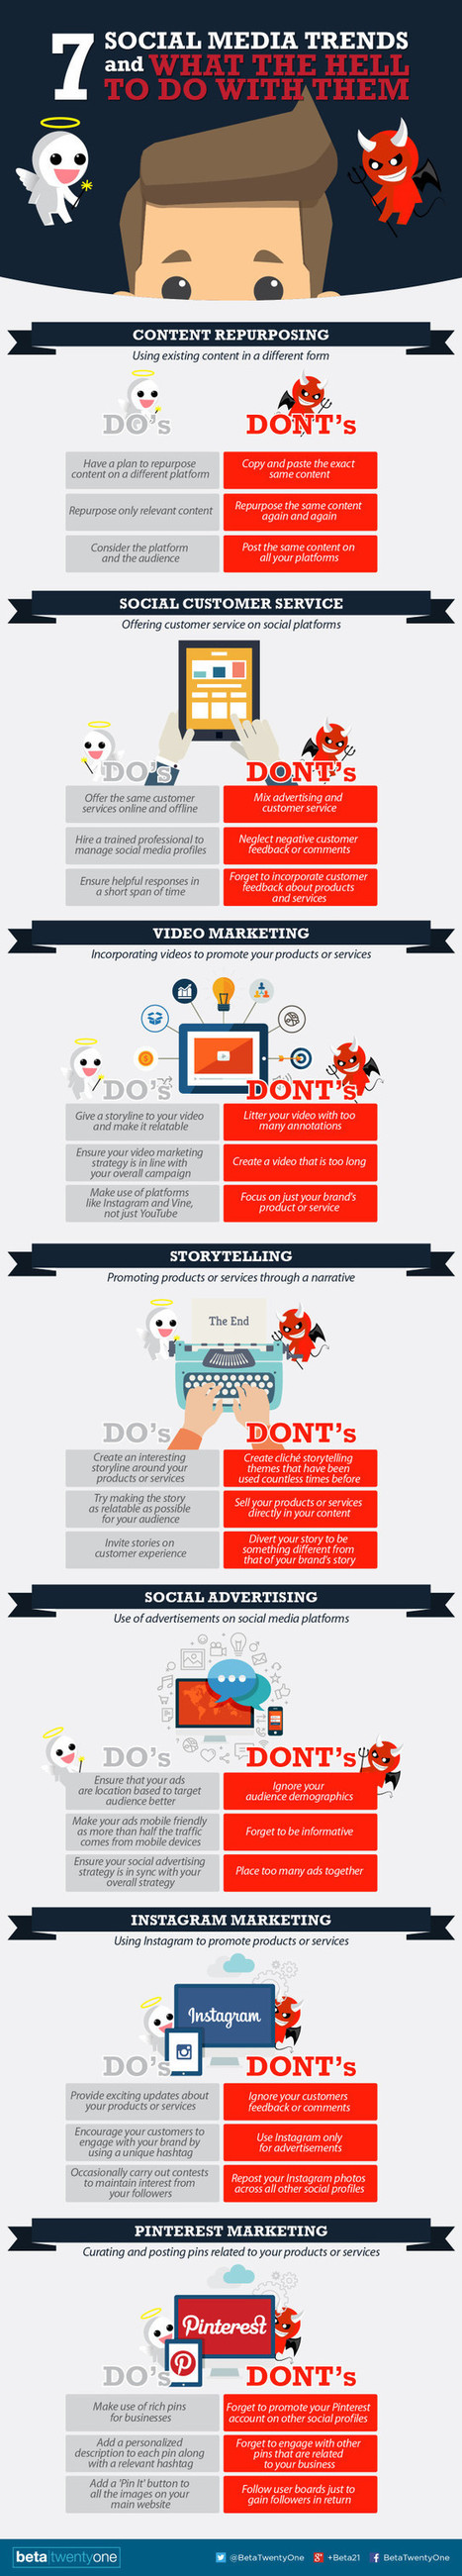 Social Media Trends and Their Do's and Don'ts #infographic | digital | Scoop.it